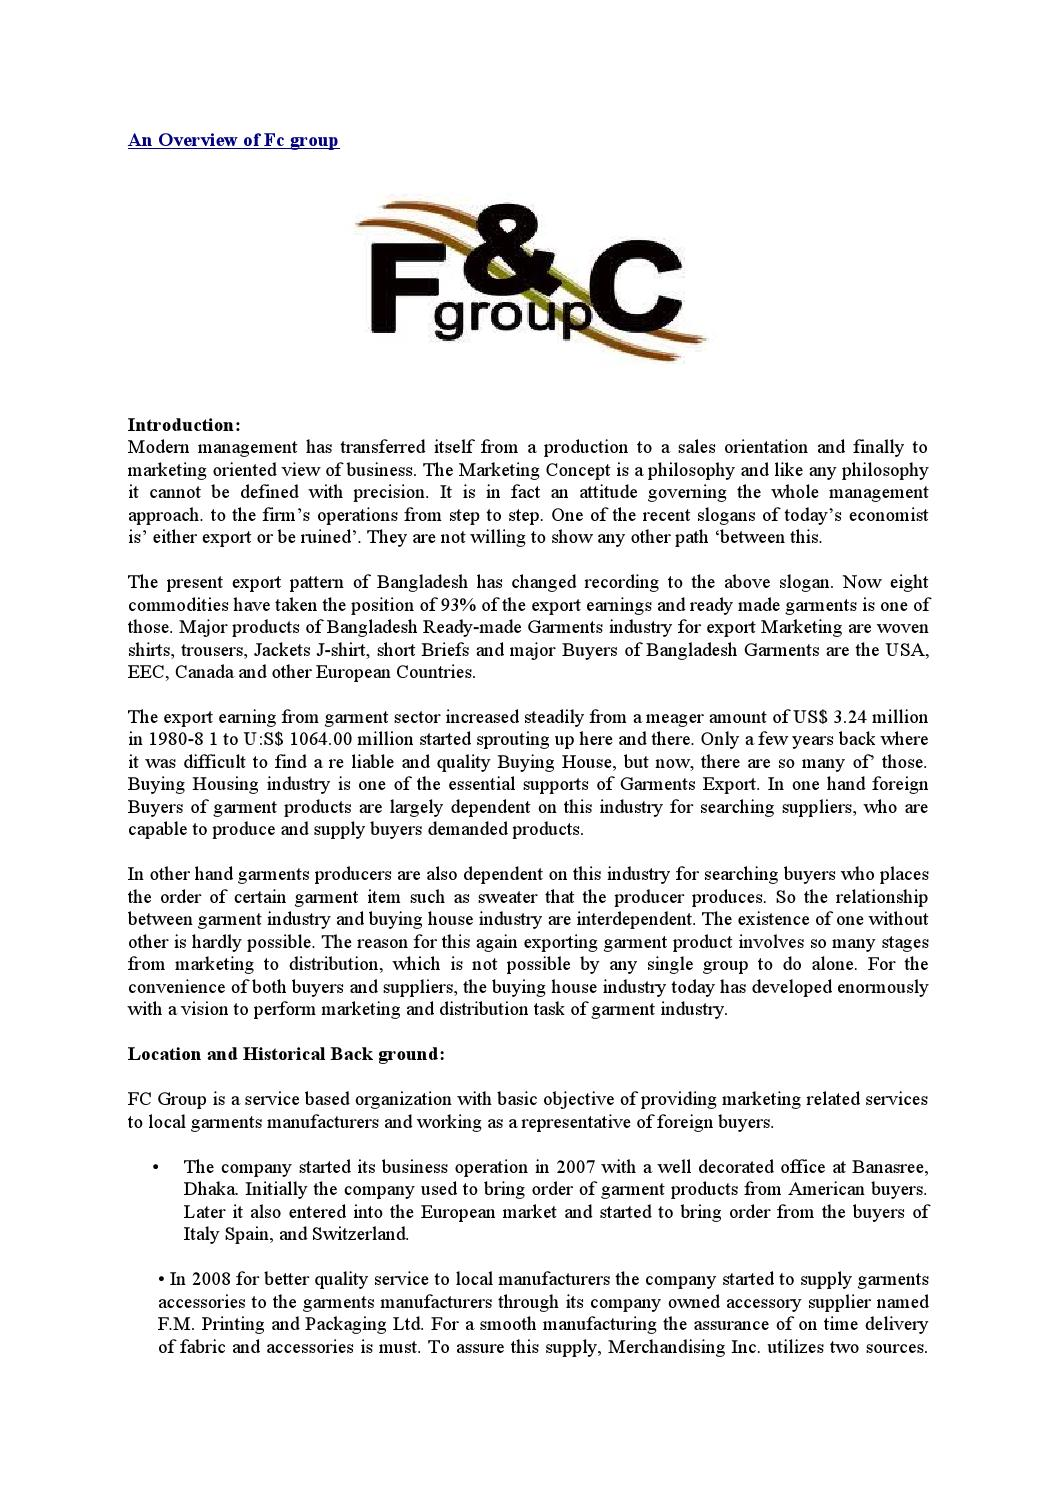 An overview of fc group by Md Papon - issuu